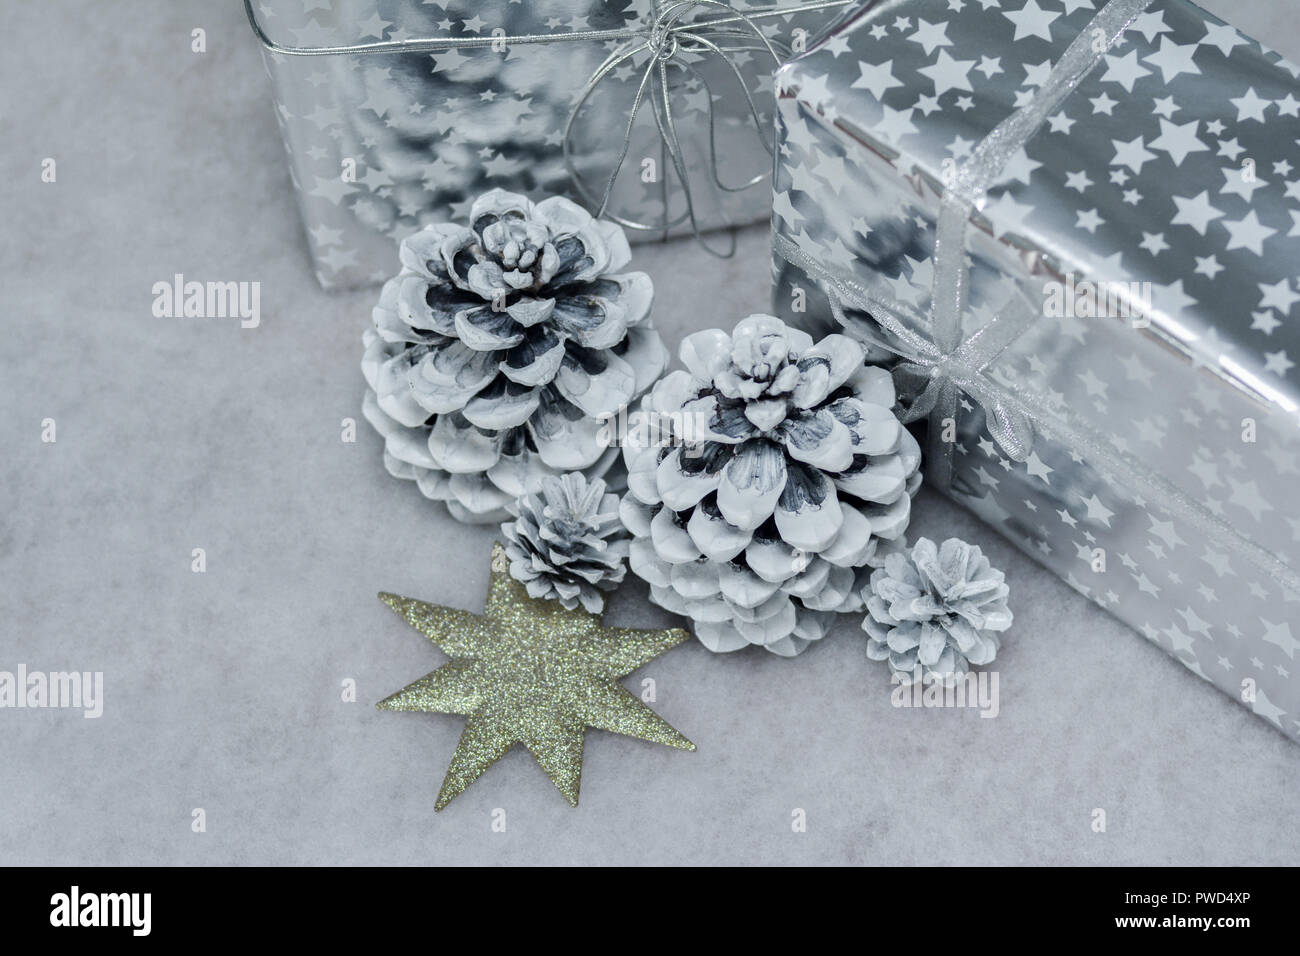 Cones in the snow and presents in silver packing - Stock Image